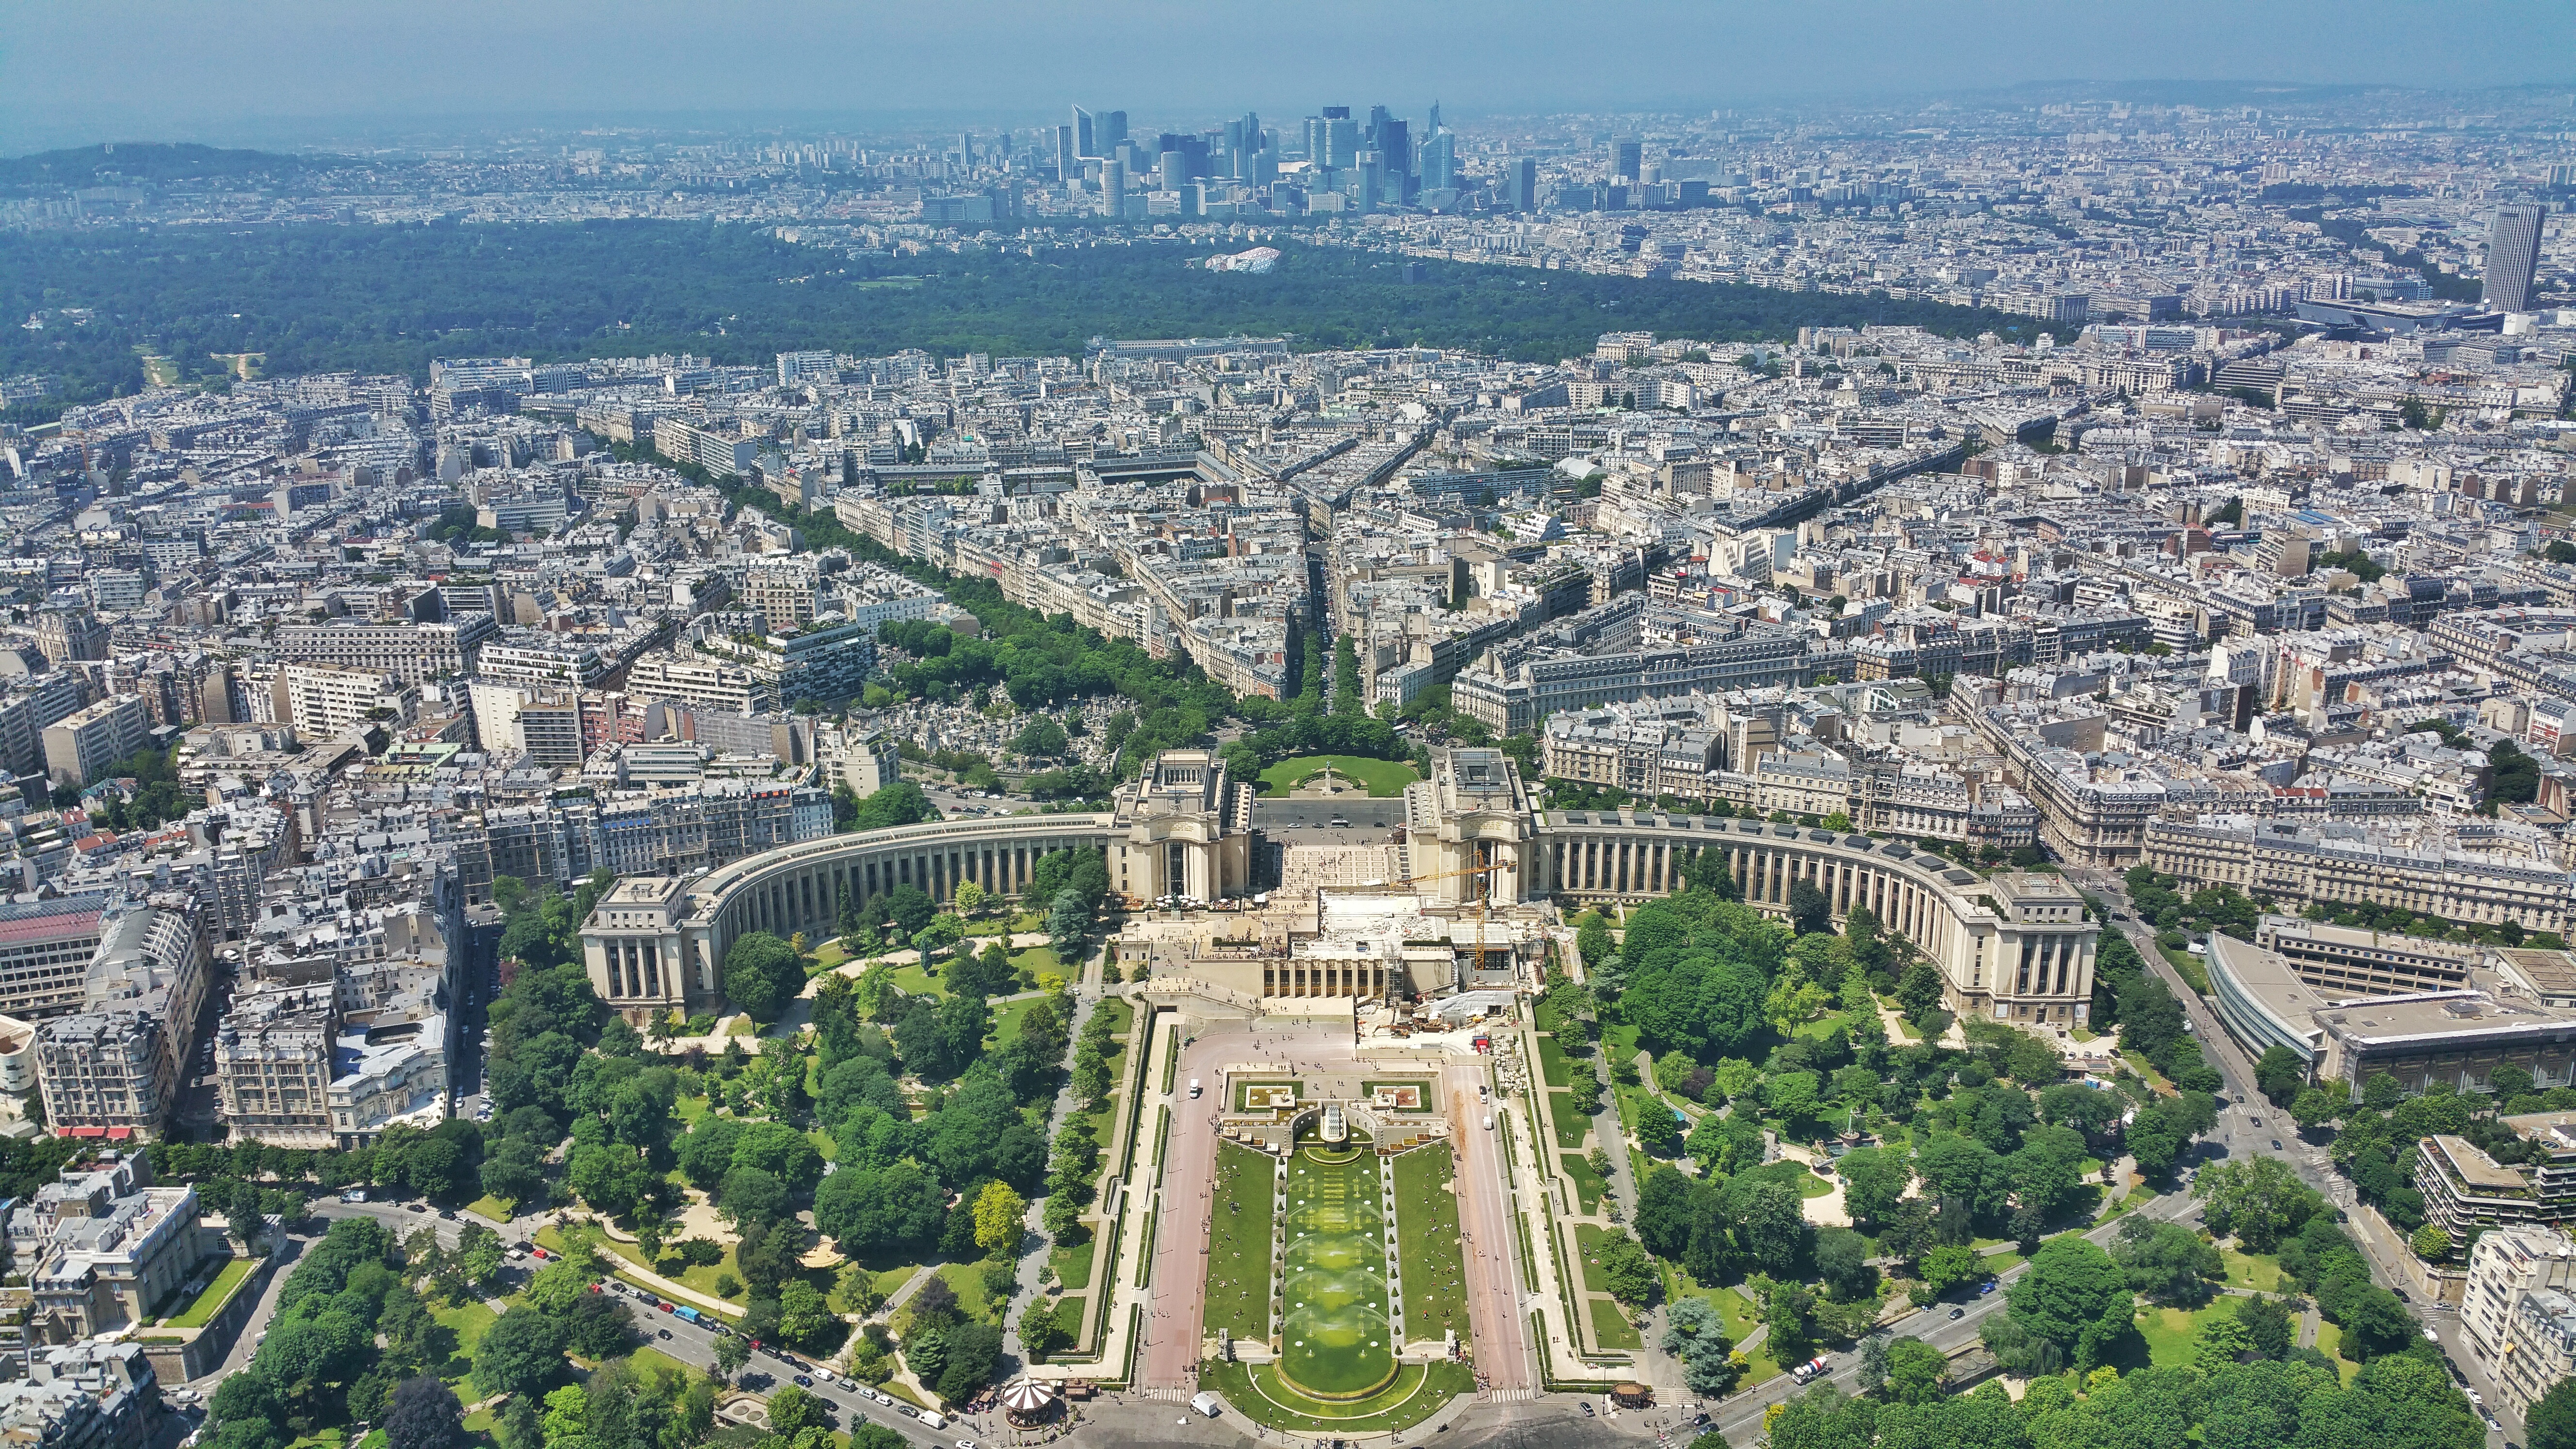 Overlooking Paris from the Eiffel Tower